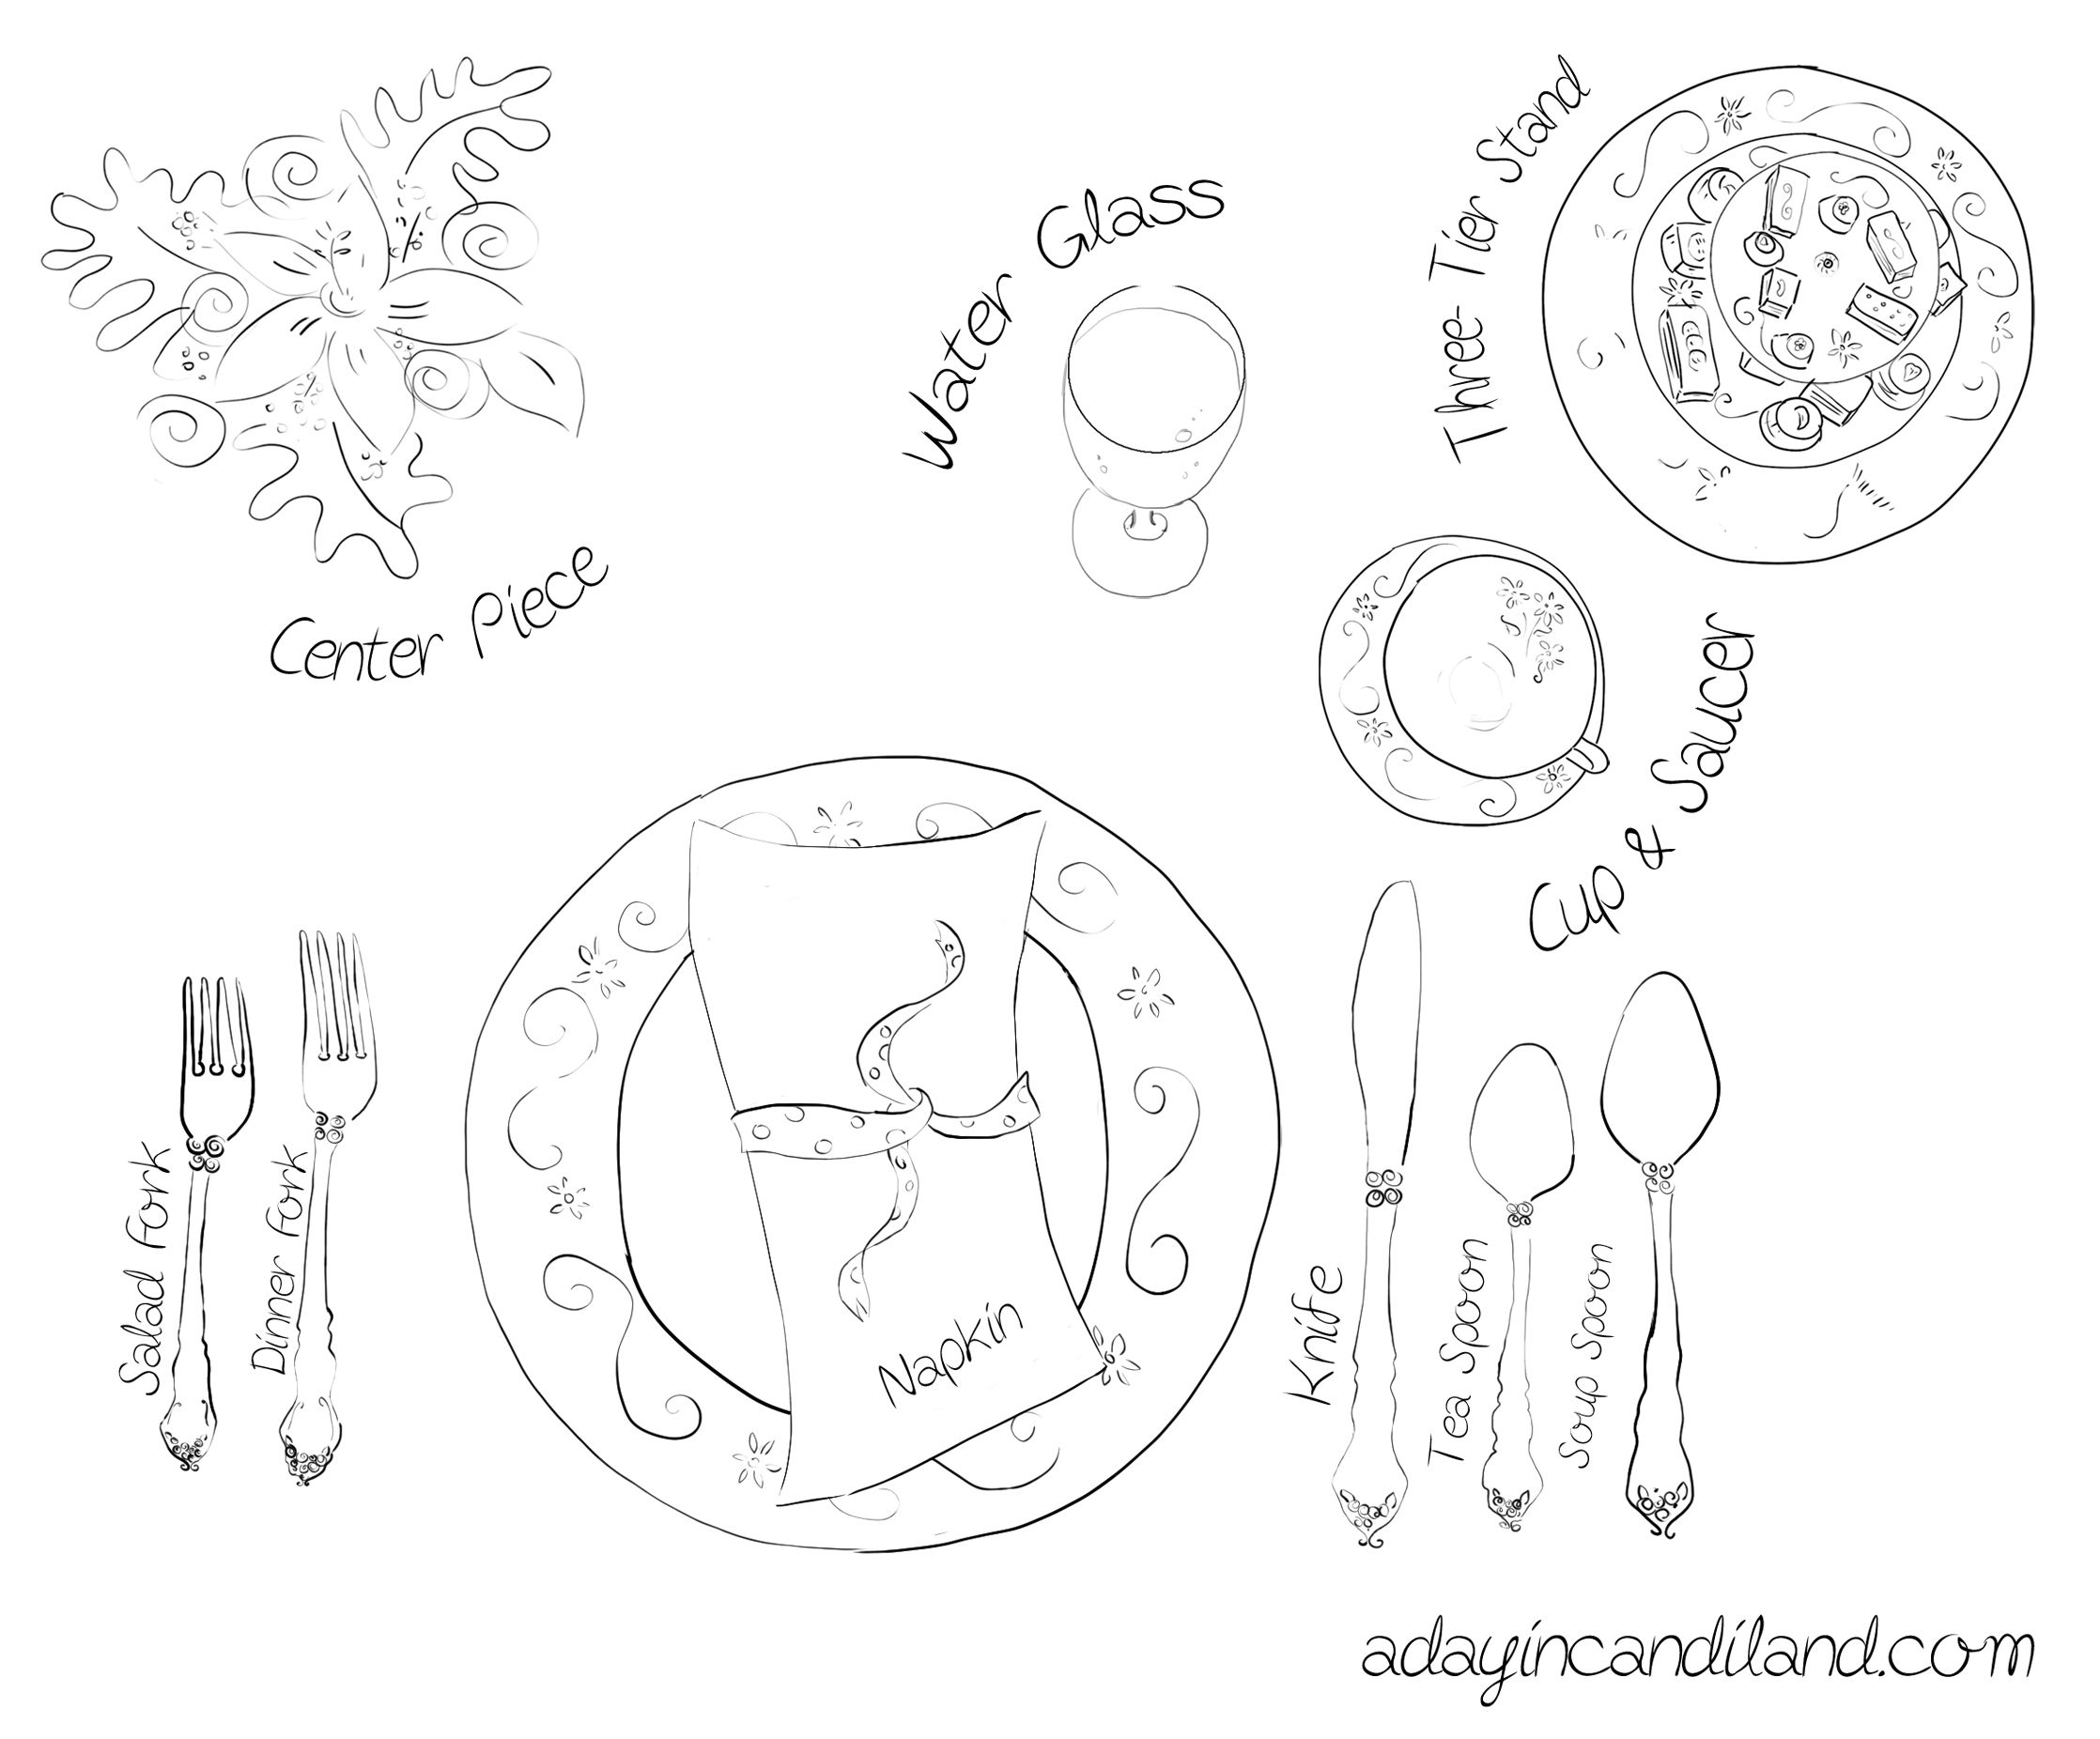 High Tea Table Setting Diagram